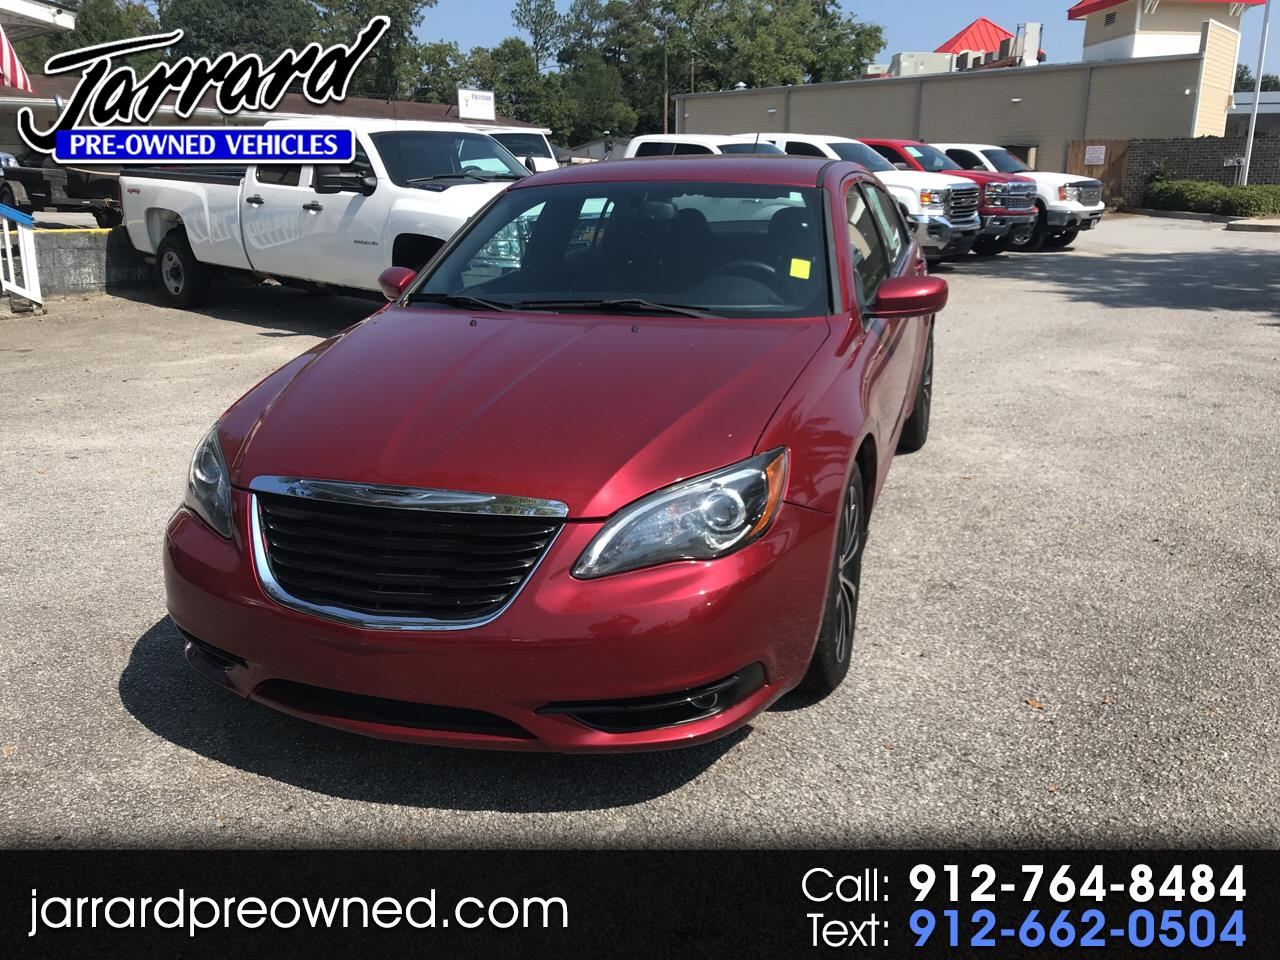 2014 Chrysler 200 4dr Sdn Touring